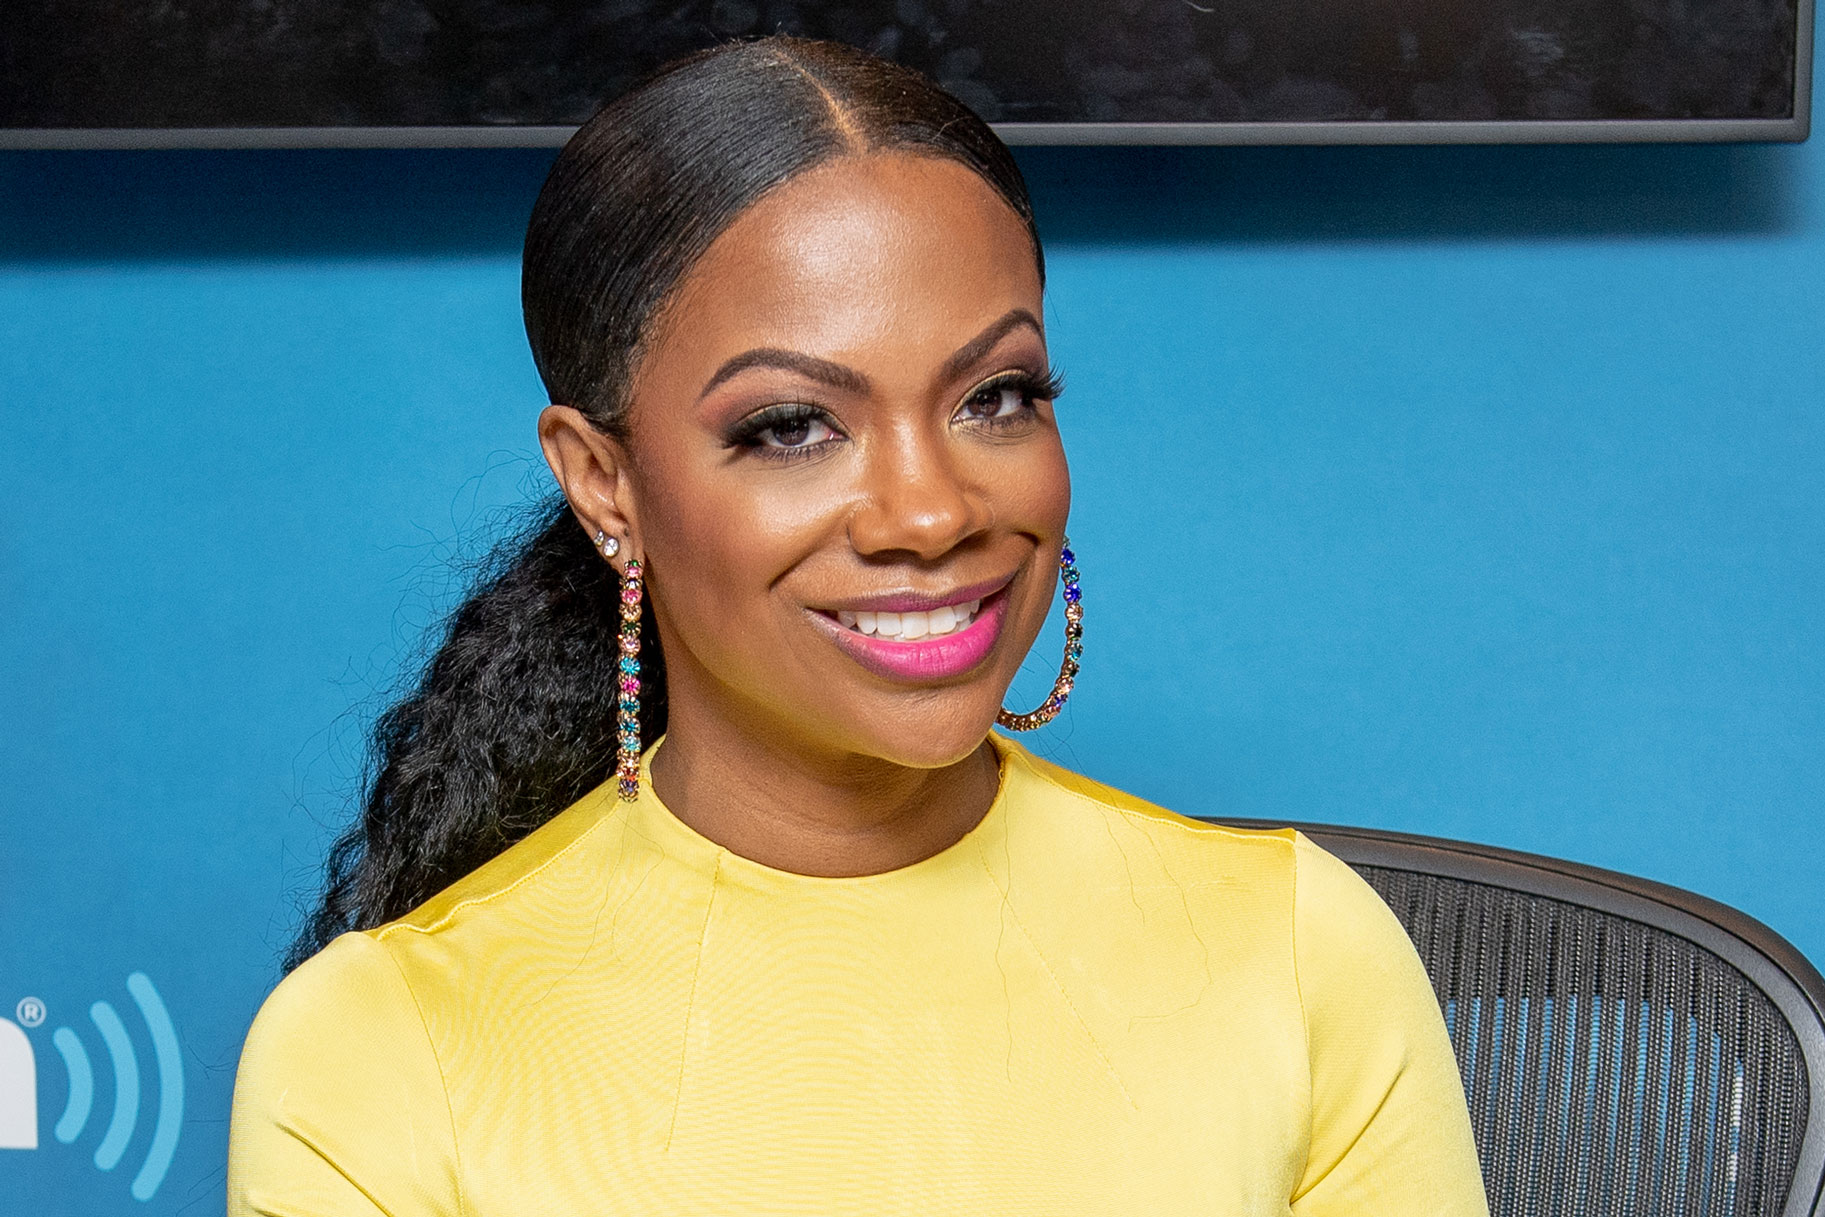 Kandi Burruss Shares A Gorgeous Family Photo From Her NYE Vacay – See It Here